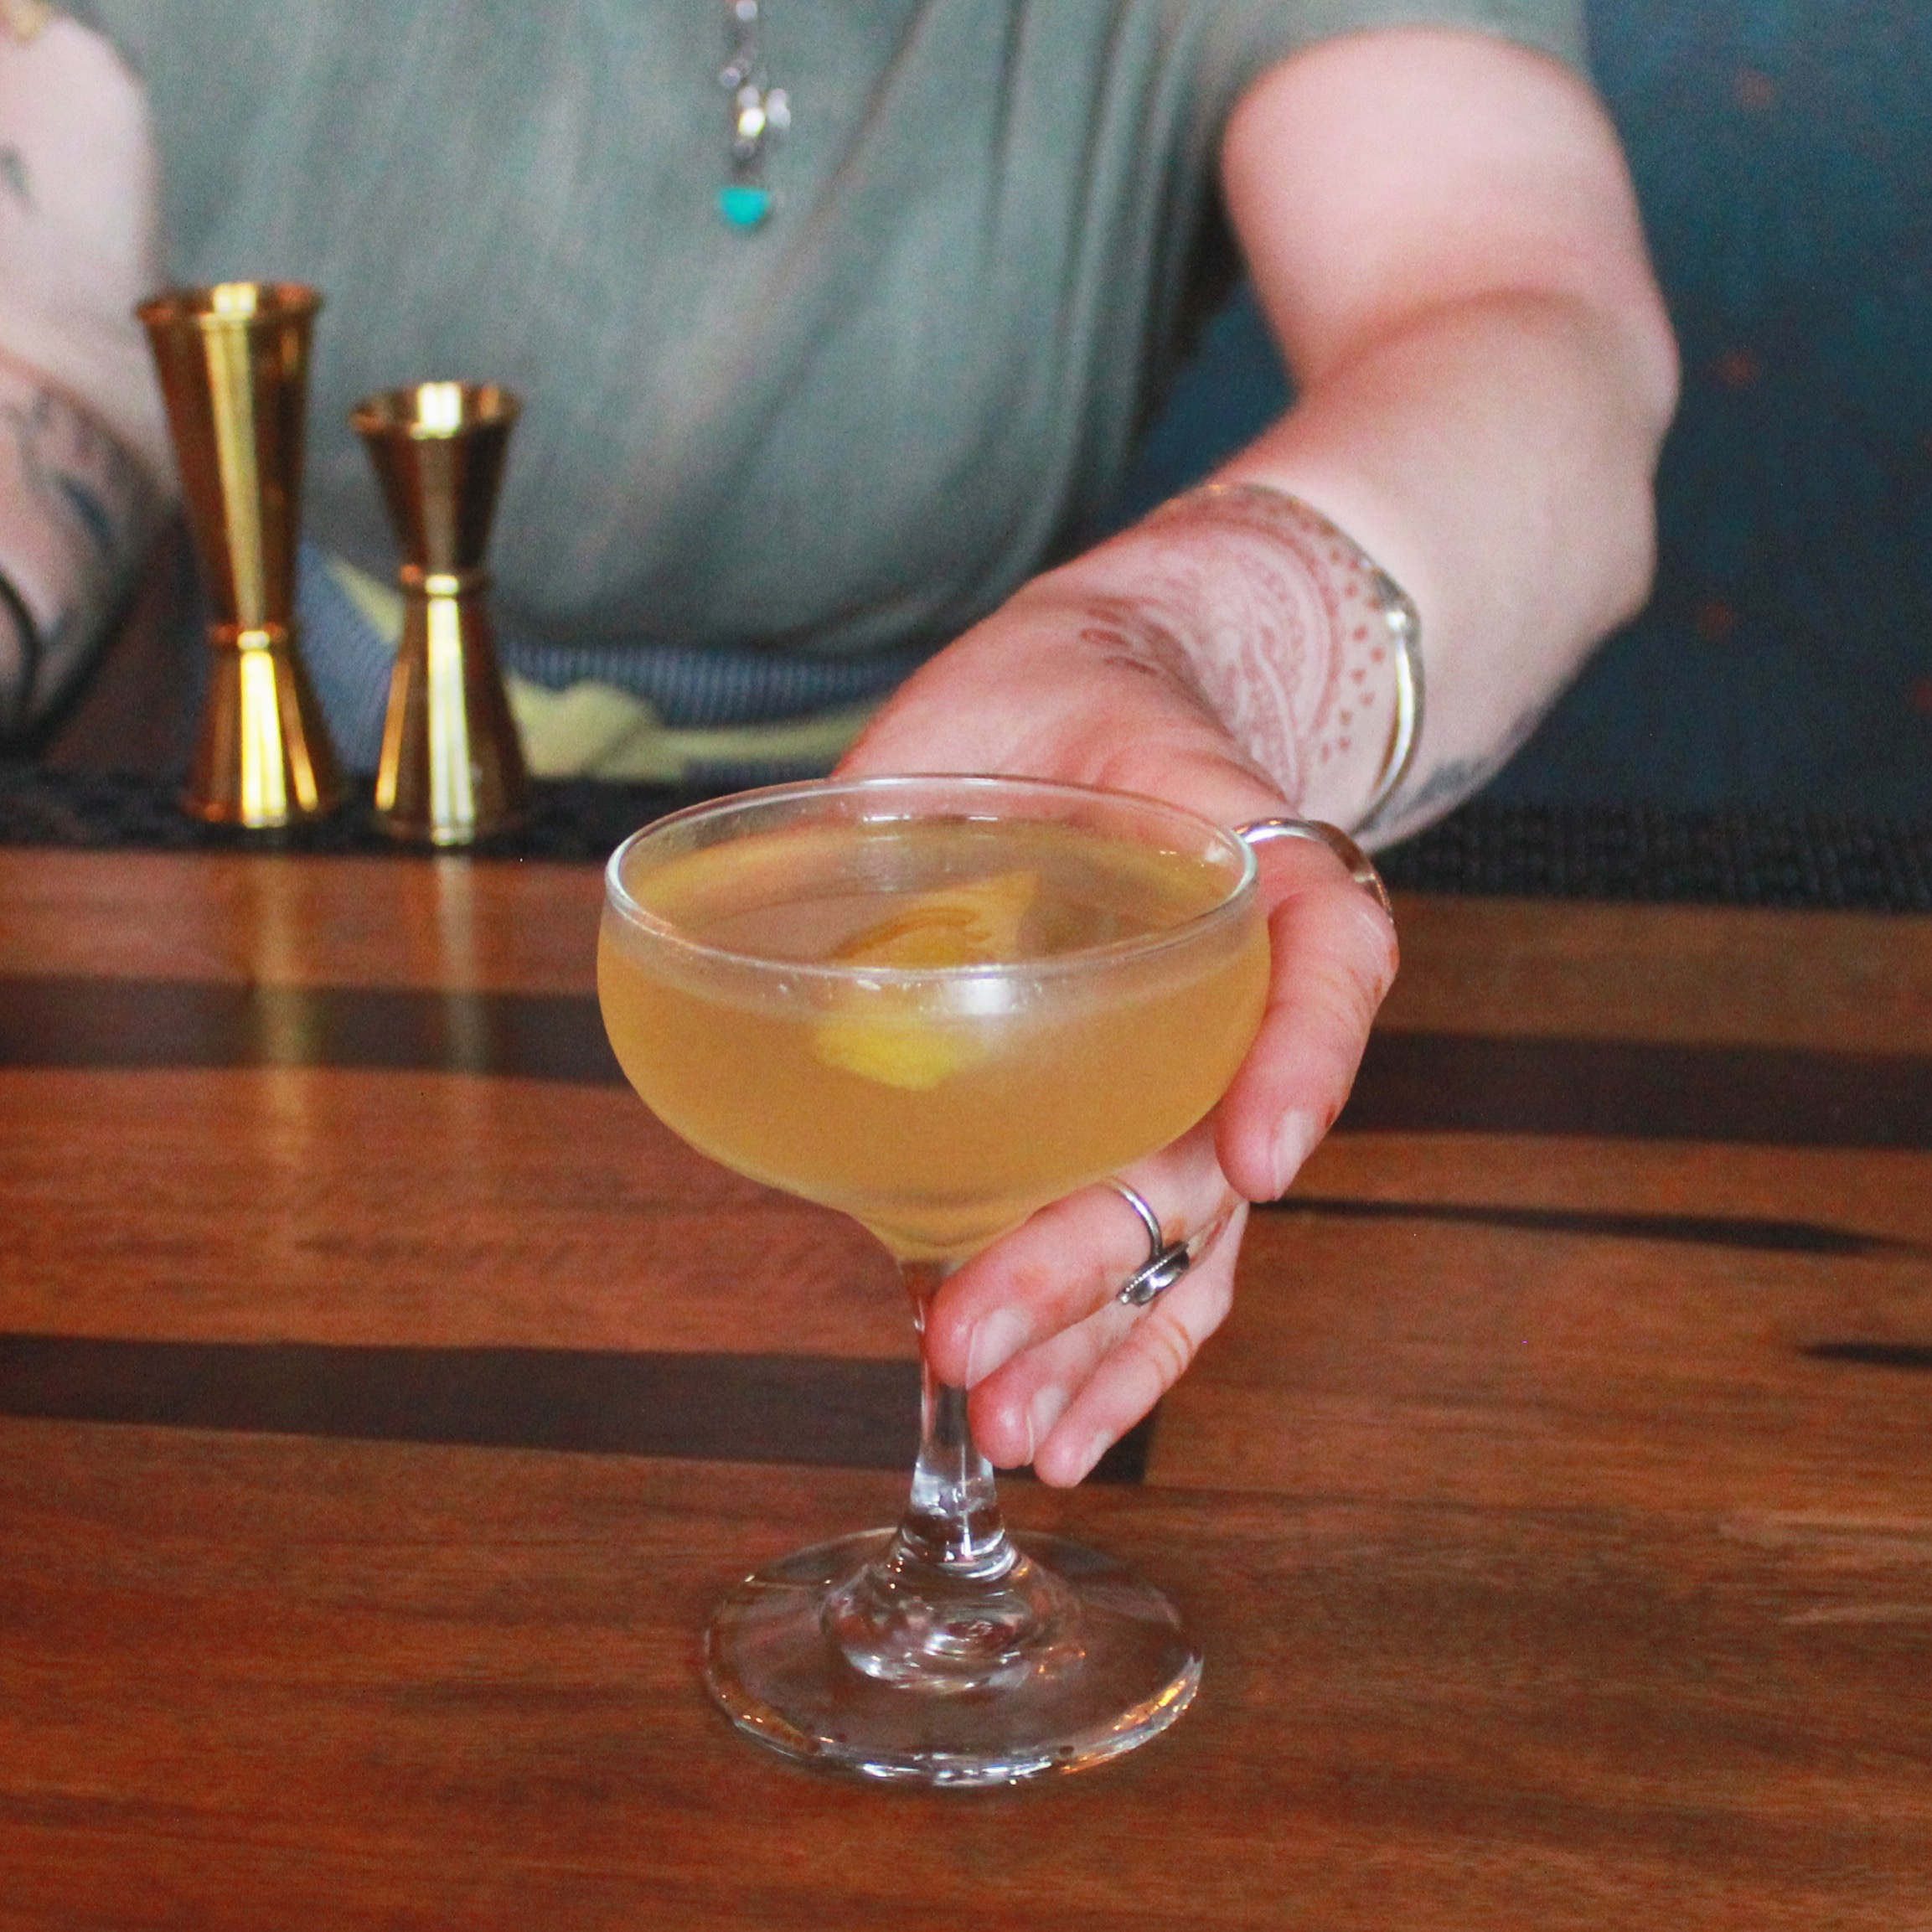 LAFITTE'S, YOUR NEW PLACE TO GET ABSINTHE MINDED